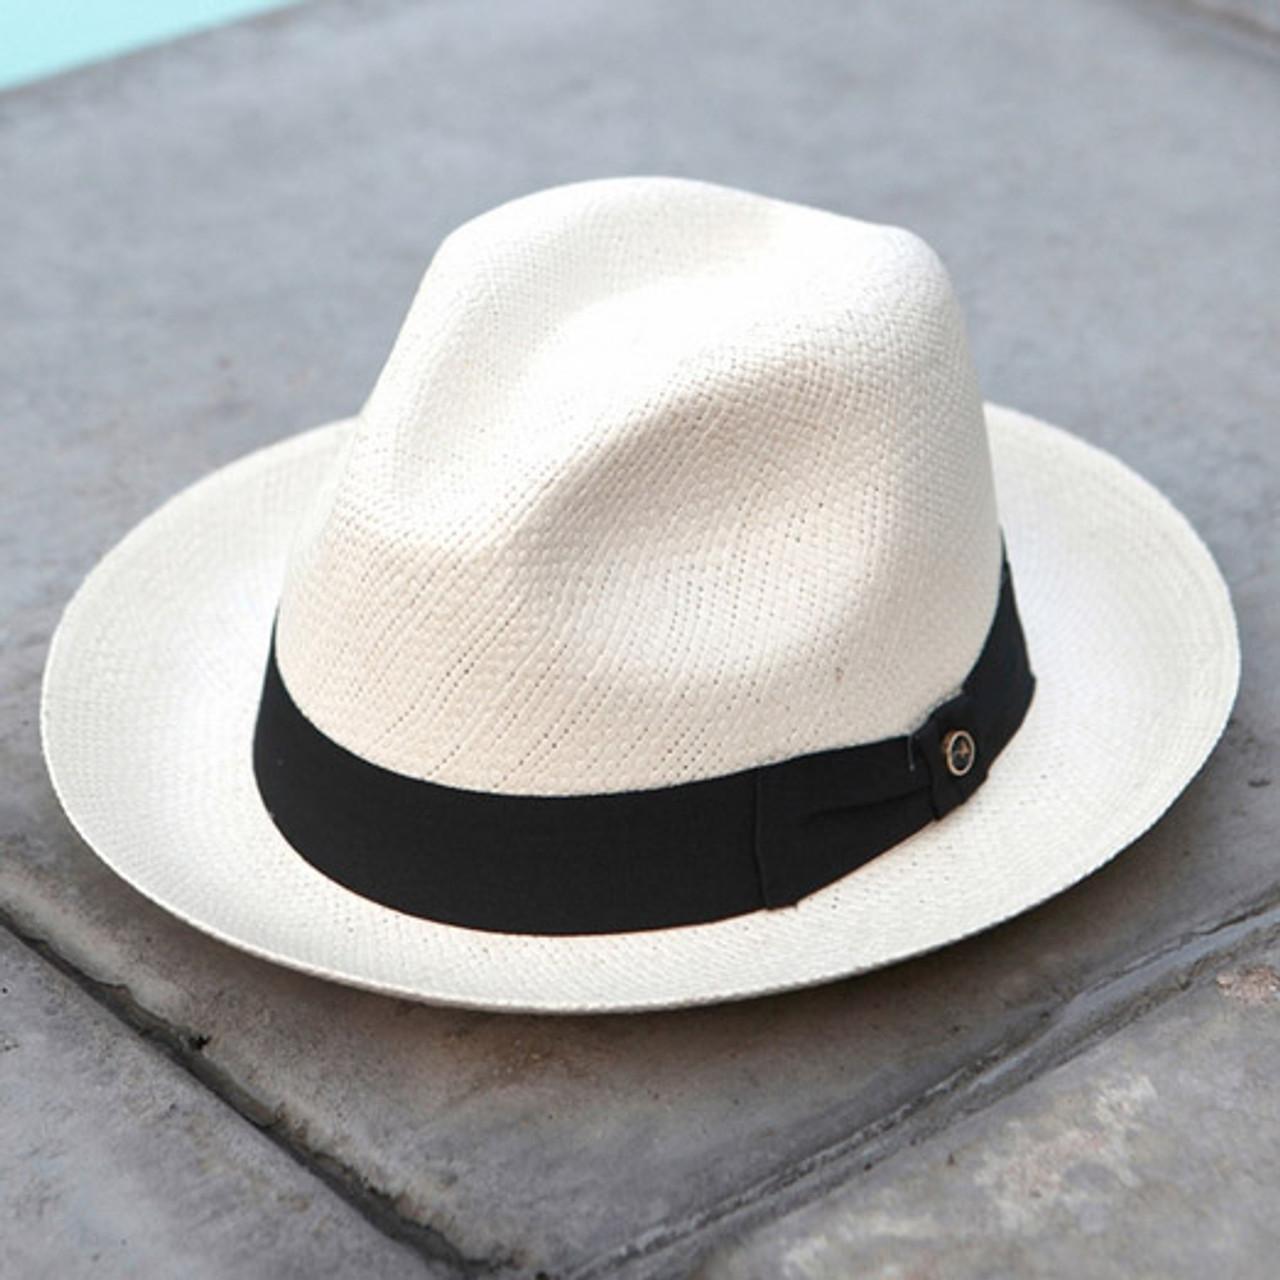 39a6af1a Austral Hats - White Panama Hat with Black Bow Band